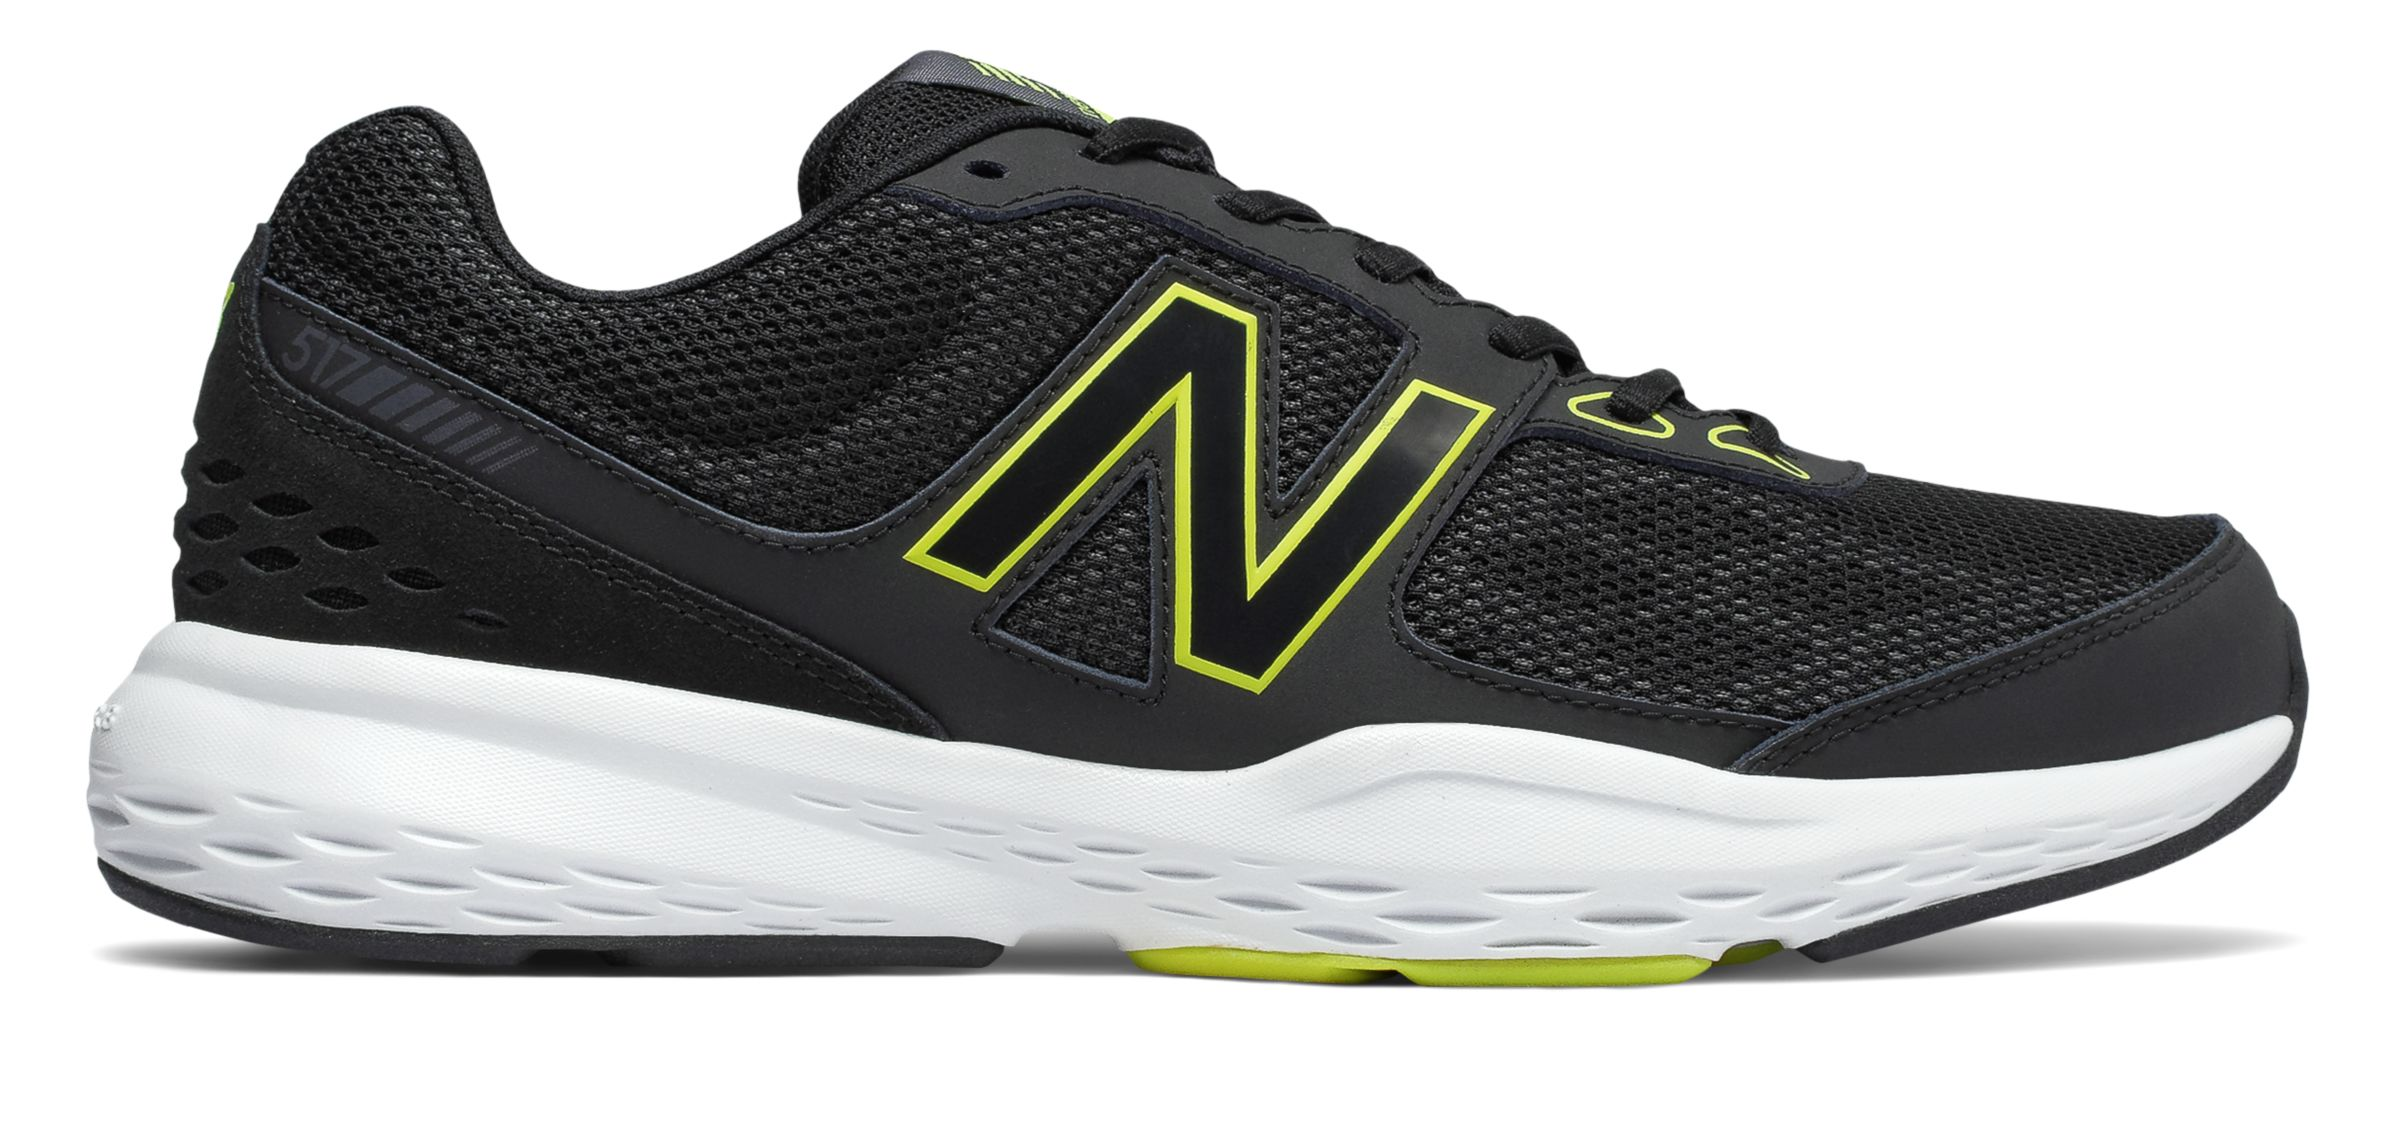 c25cb47bd02fb New Balance Men s 517v1 Shoes Black with Yellow